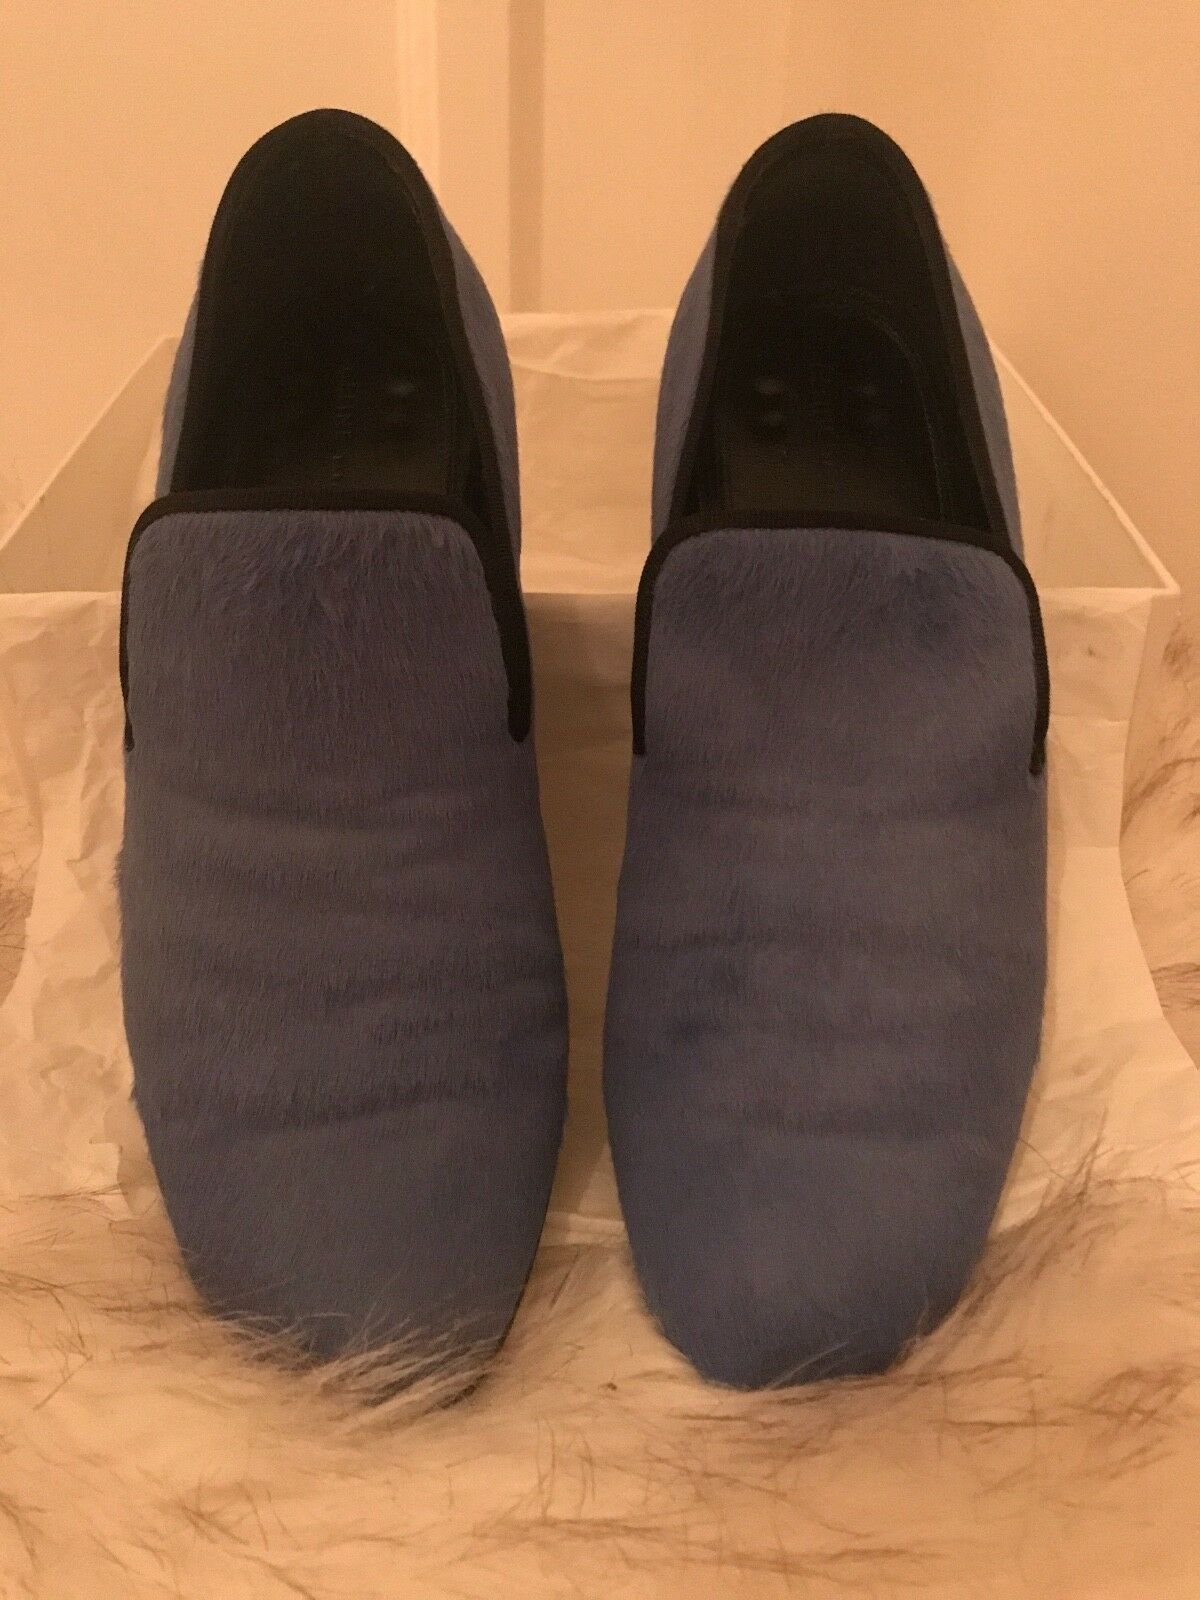 CELINE Blau pony hair loafers/flats great EU 36/37, UK 3/4, great loafers/flats condition with box b7602f